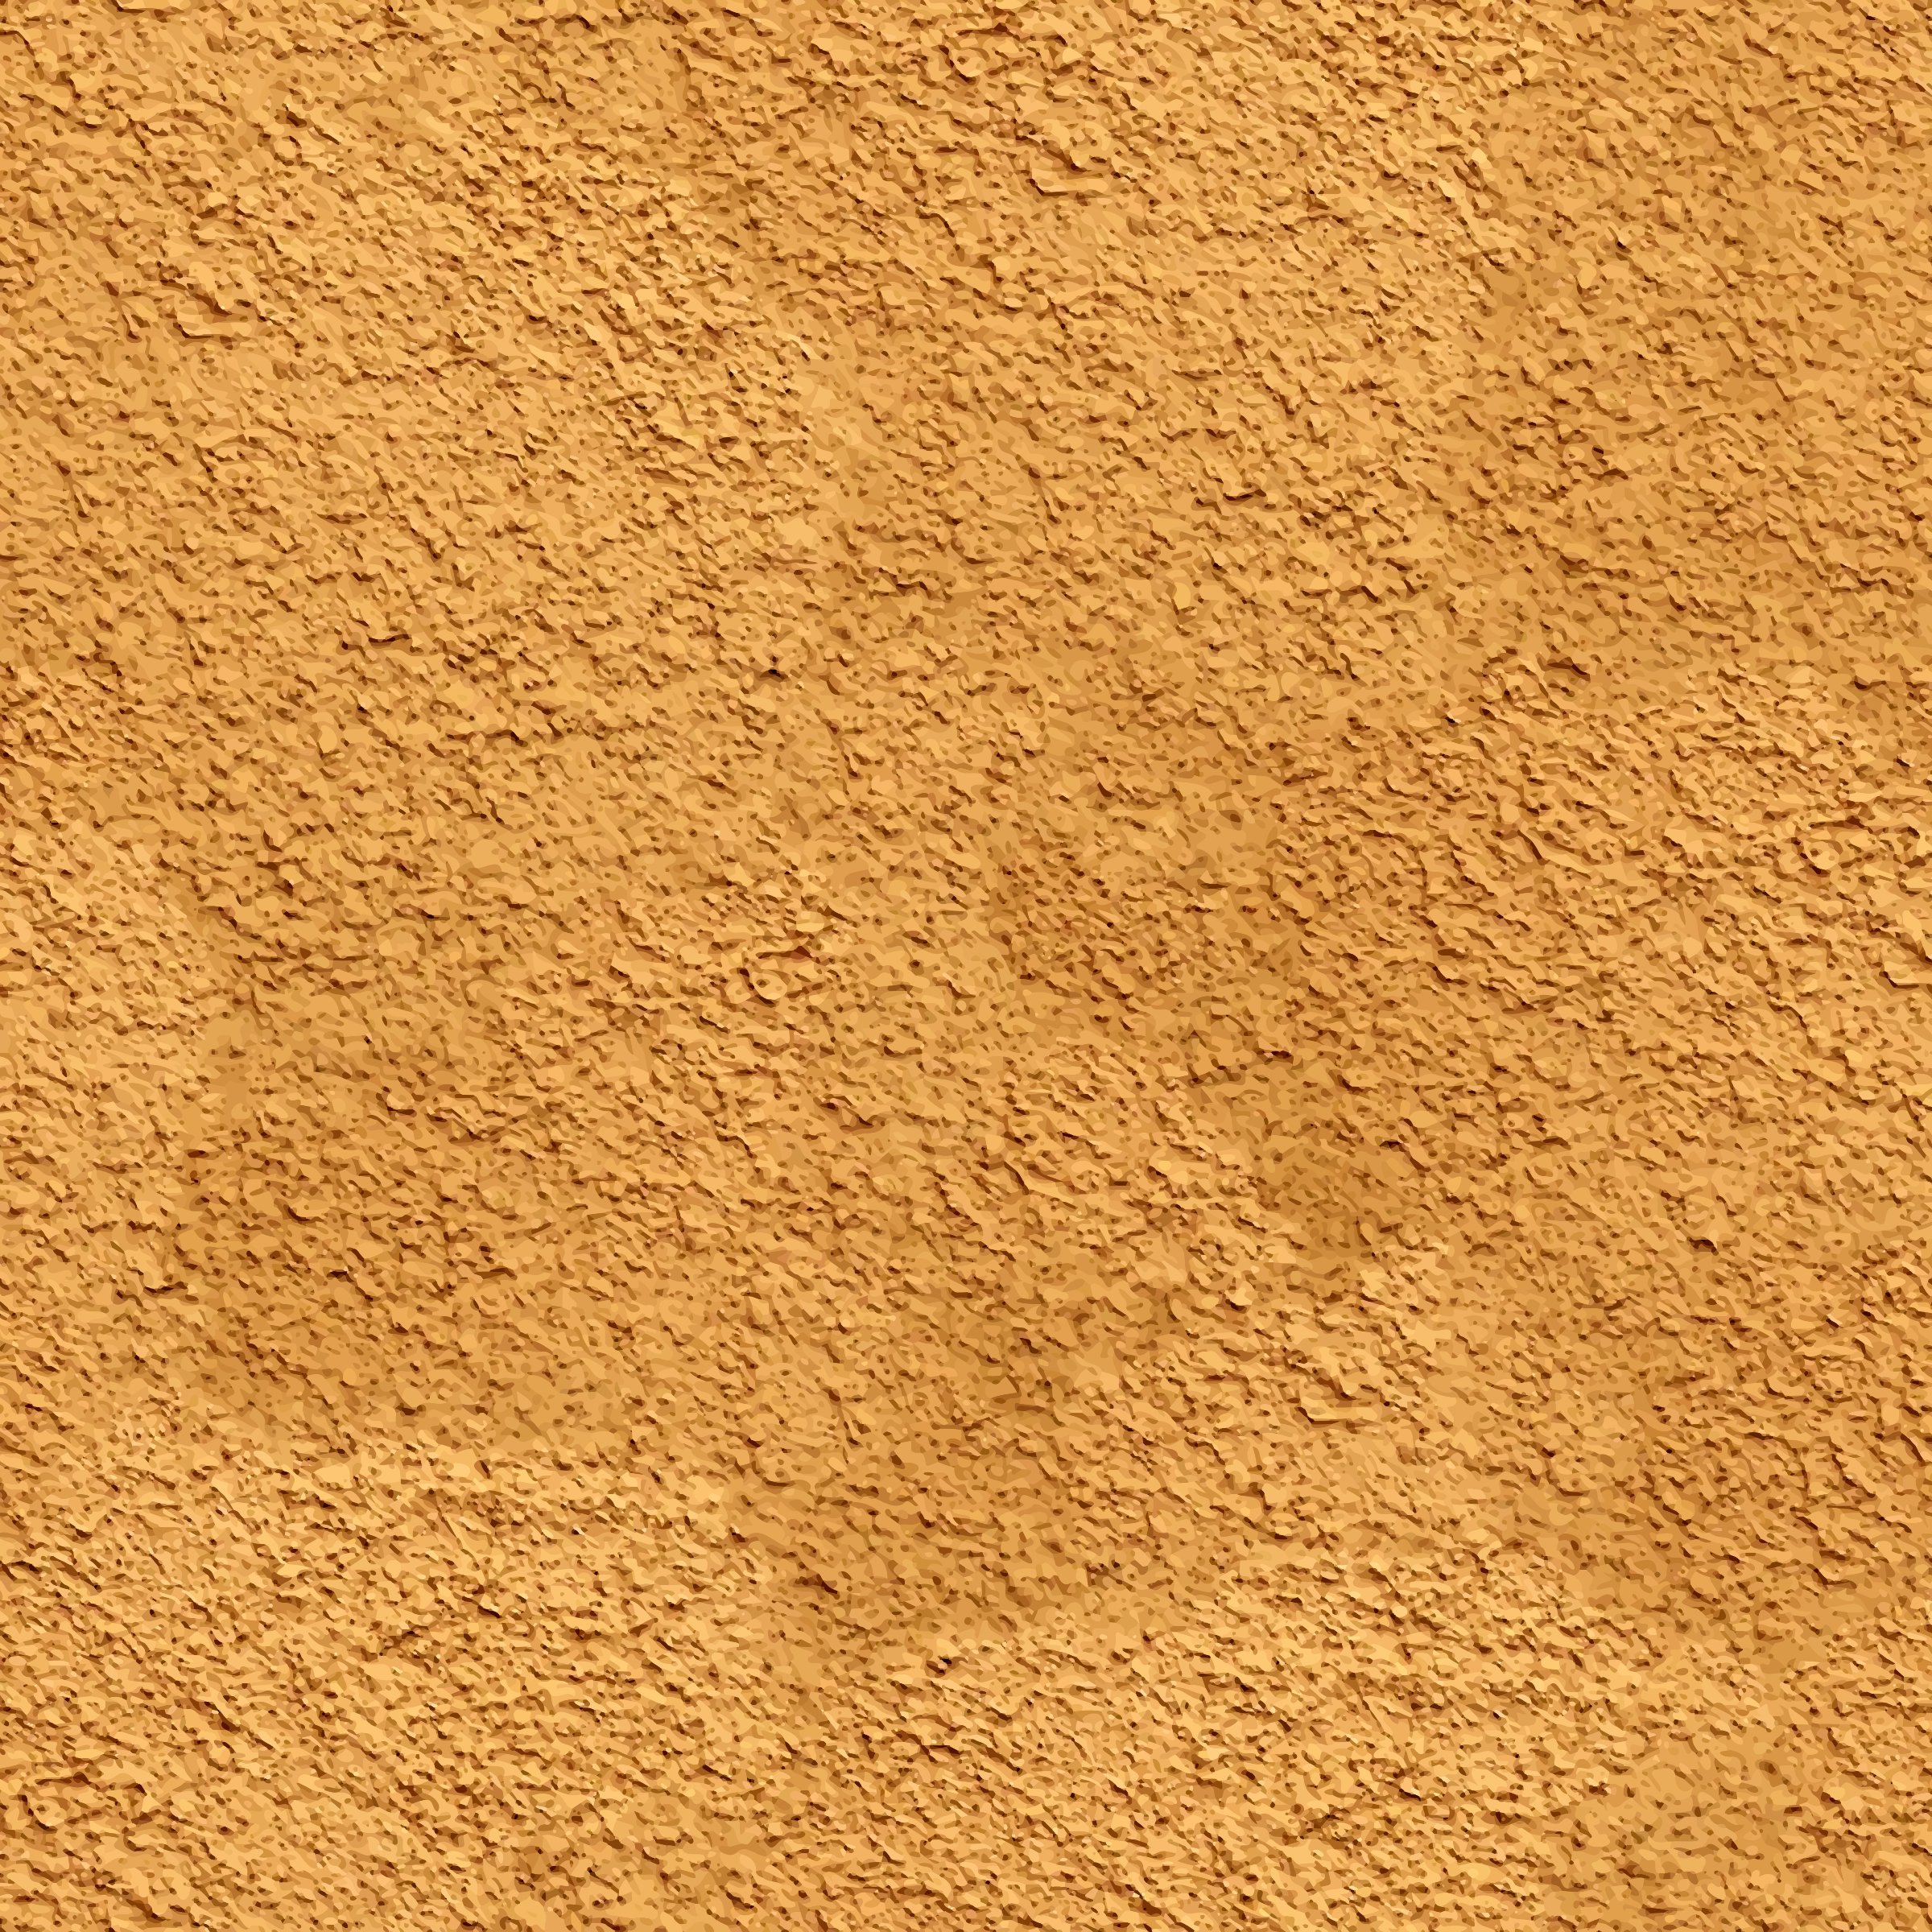 clay tennis court texture wwwimgkidcom the image kid